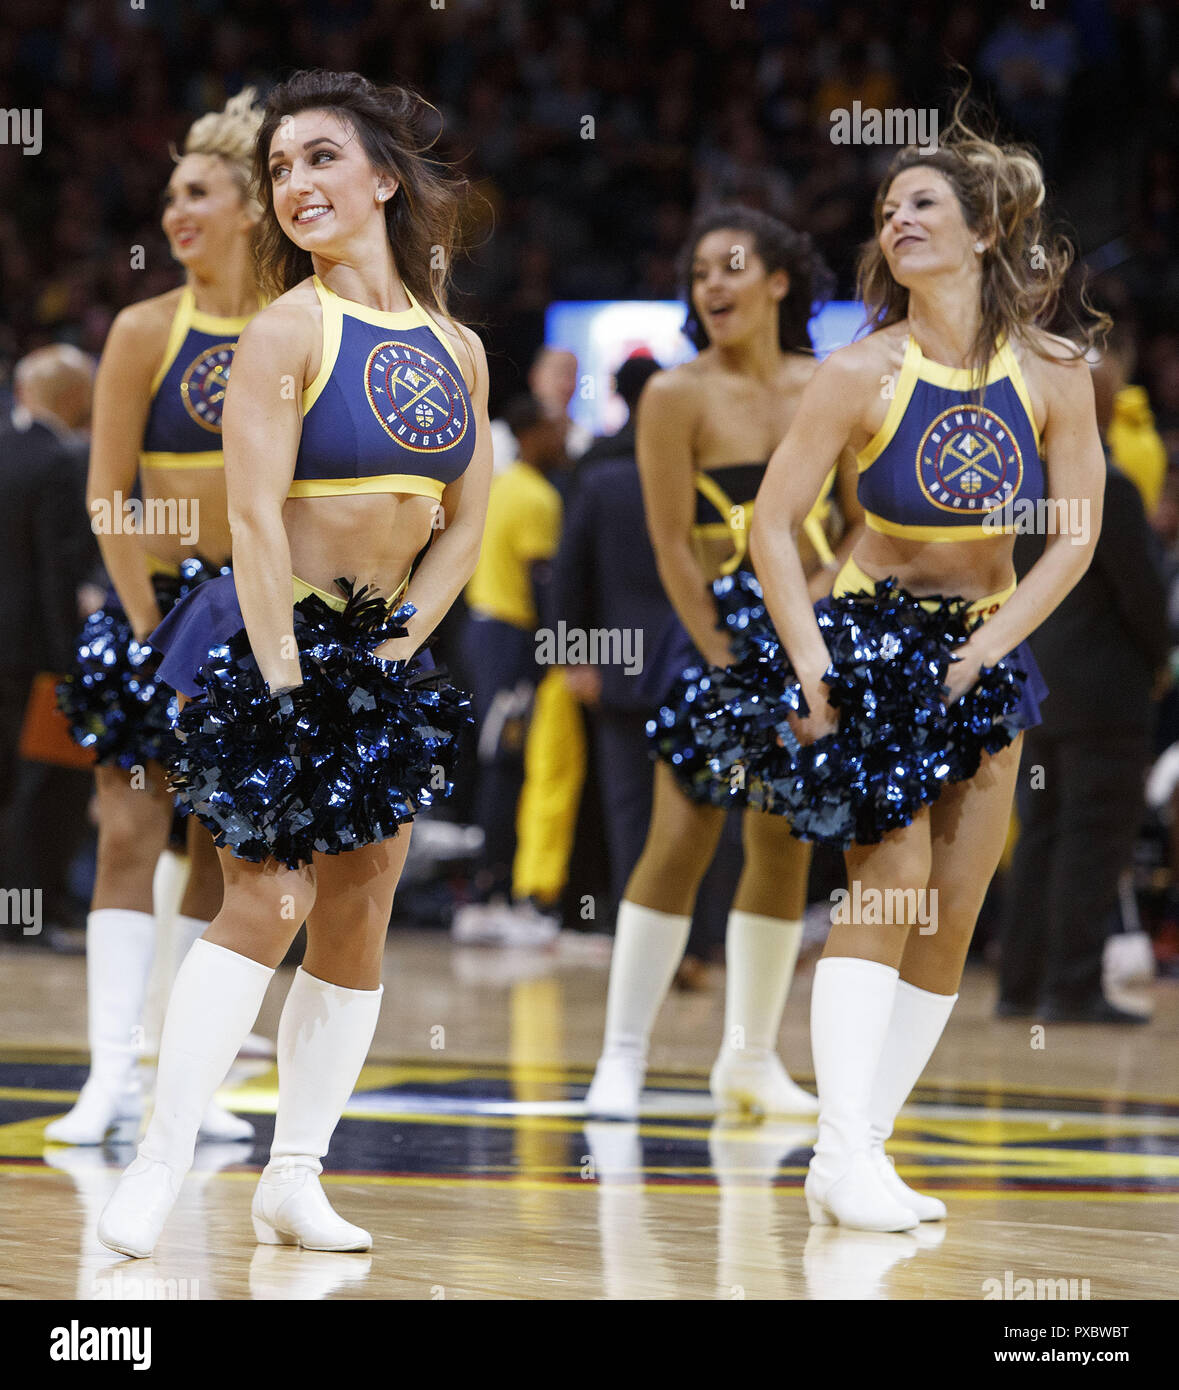 Denver Nuggets Dancers: Denver, Colorado, USA. 20th Oct, 2018. The Denver Nuggets